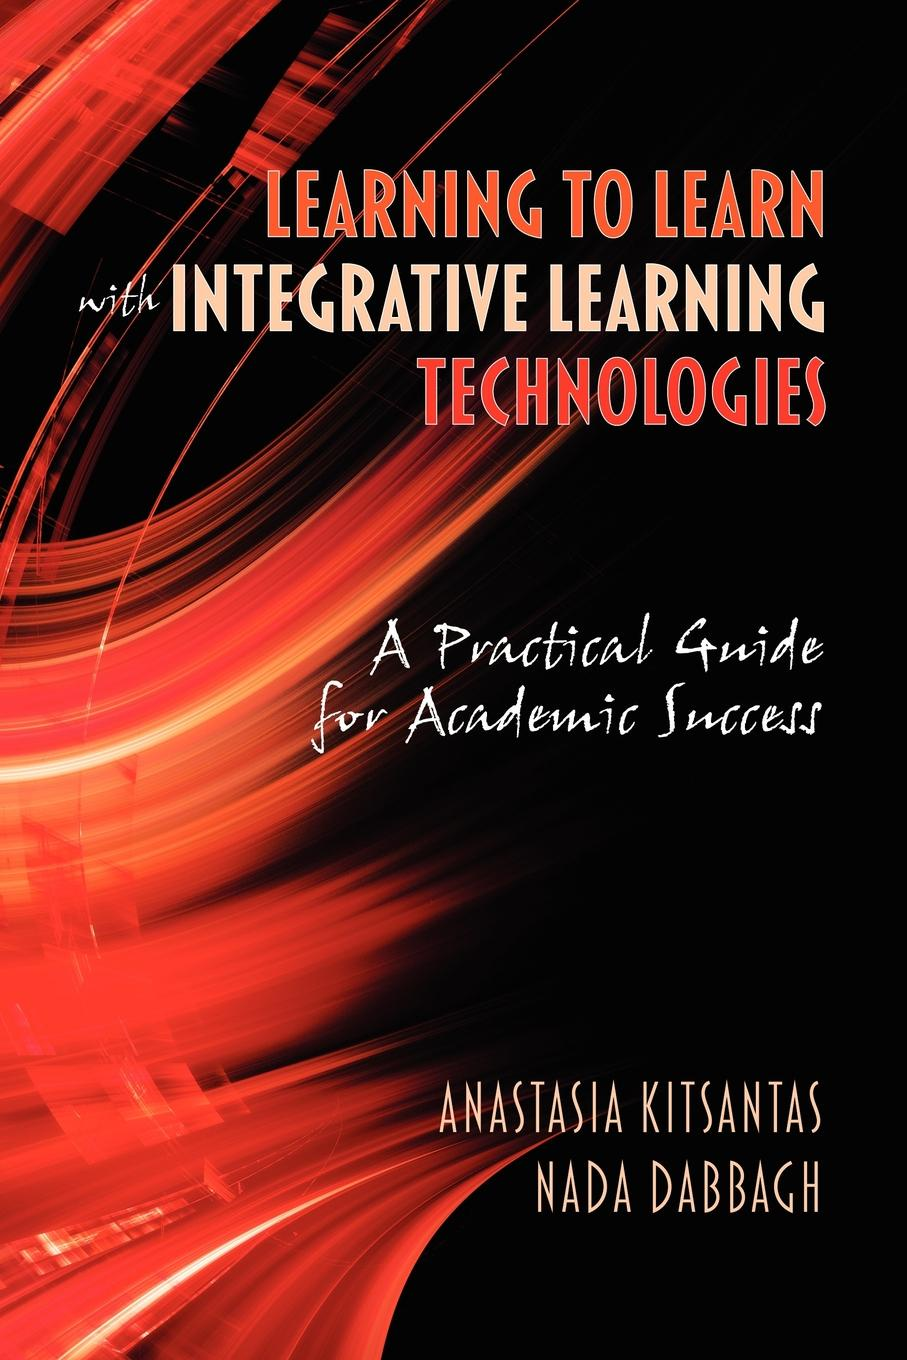 Anastasia Kitsantas, NADA Dabbagh Learning to Learn with Integrative Learning Technologies (Ilt). A Practical Guide for Academic Success andrey ermoshin learn languages easily methods of self regulation for successful learning